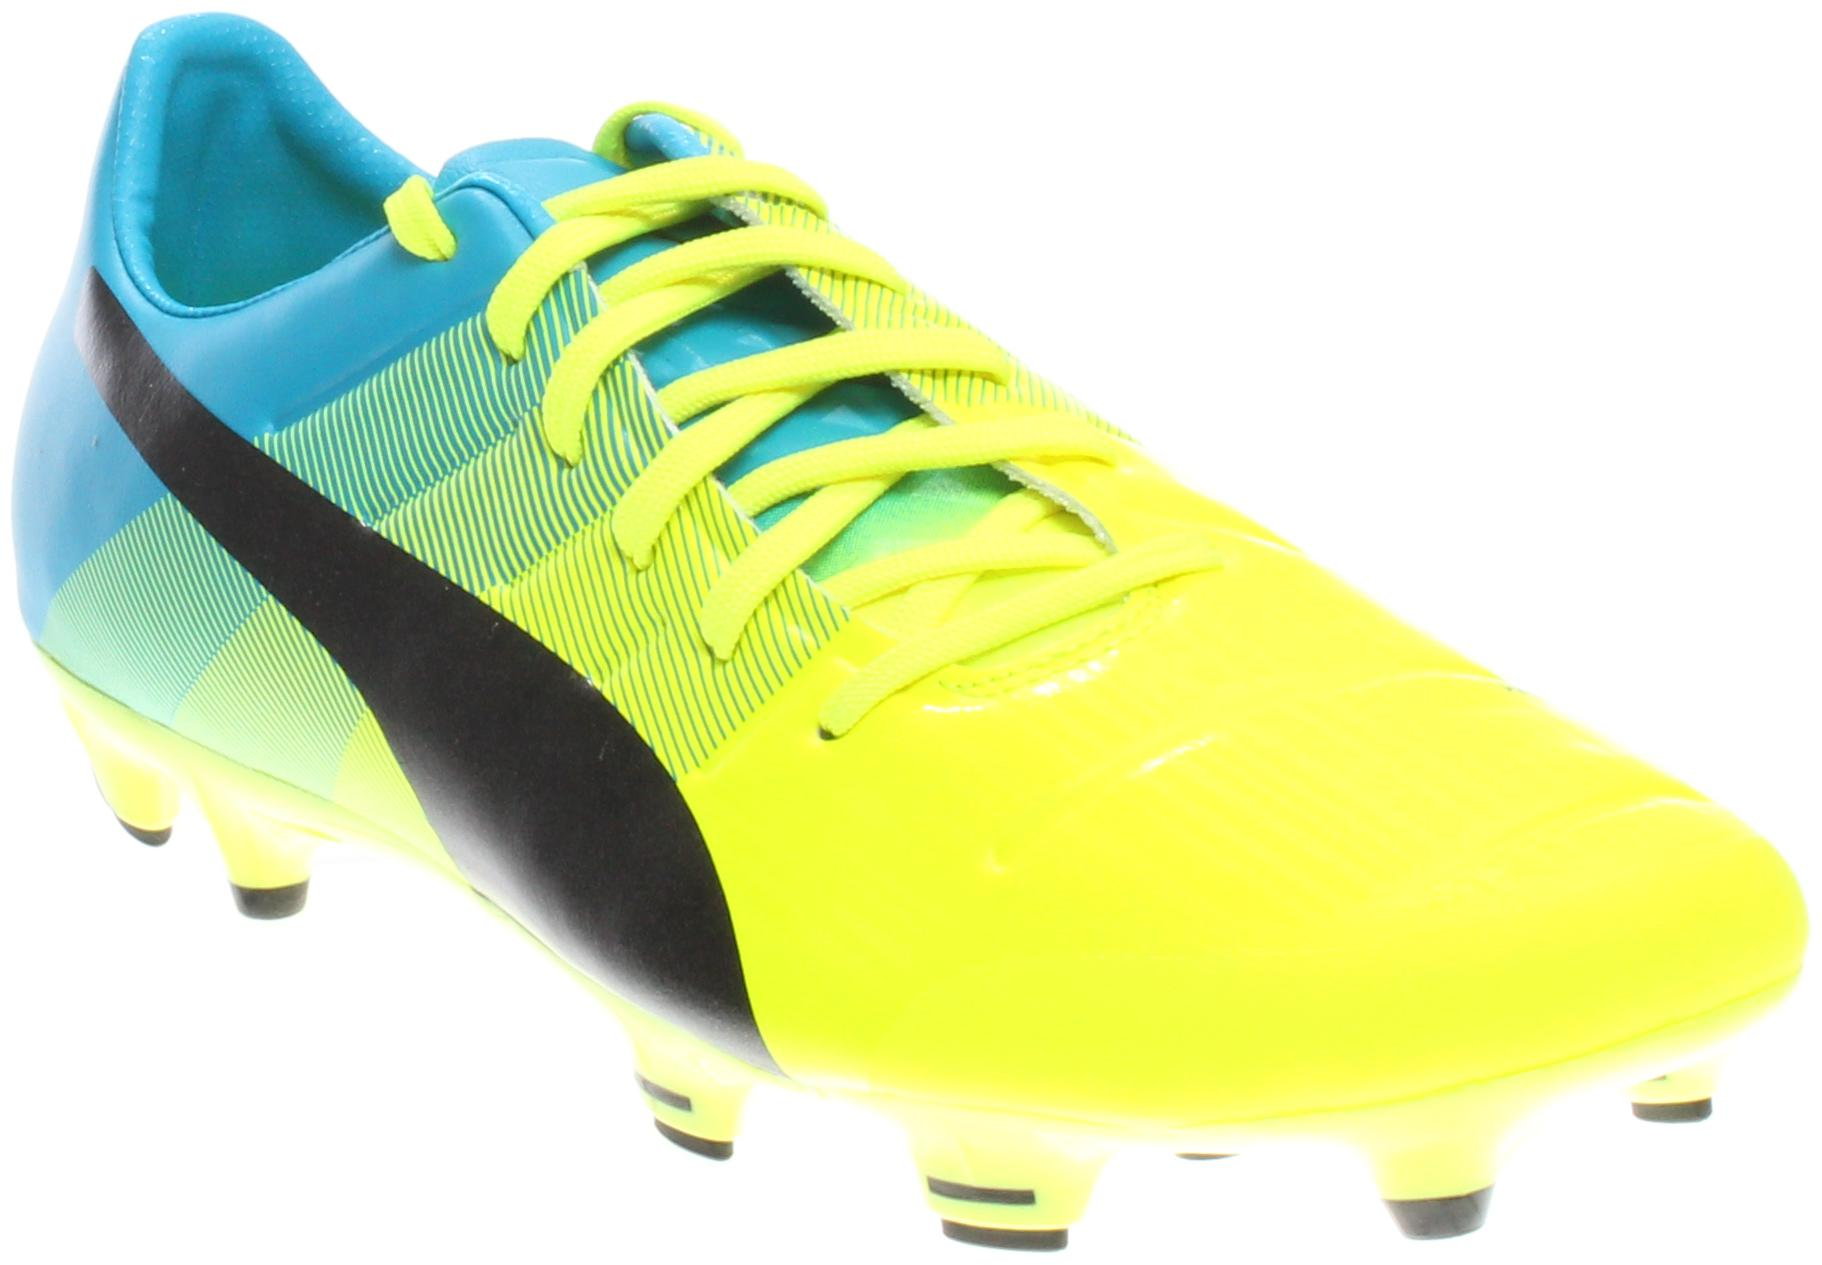 8acc882dd PUMA Evopower 2.3 Firm Ground Cleats in Yellow for Men - Lyst